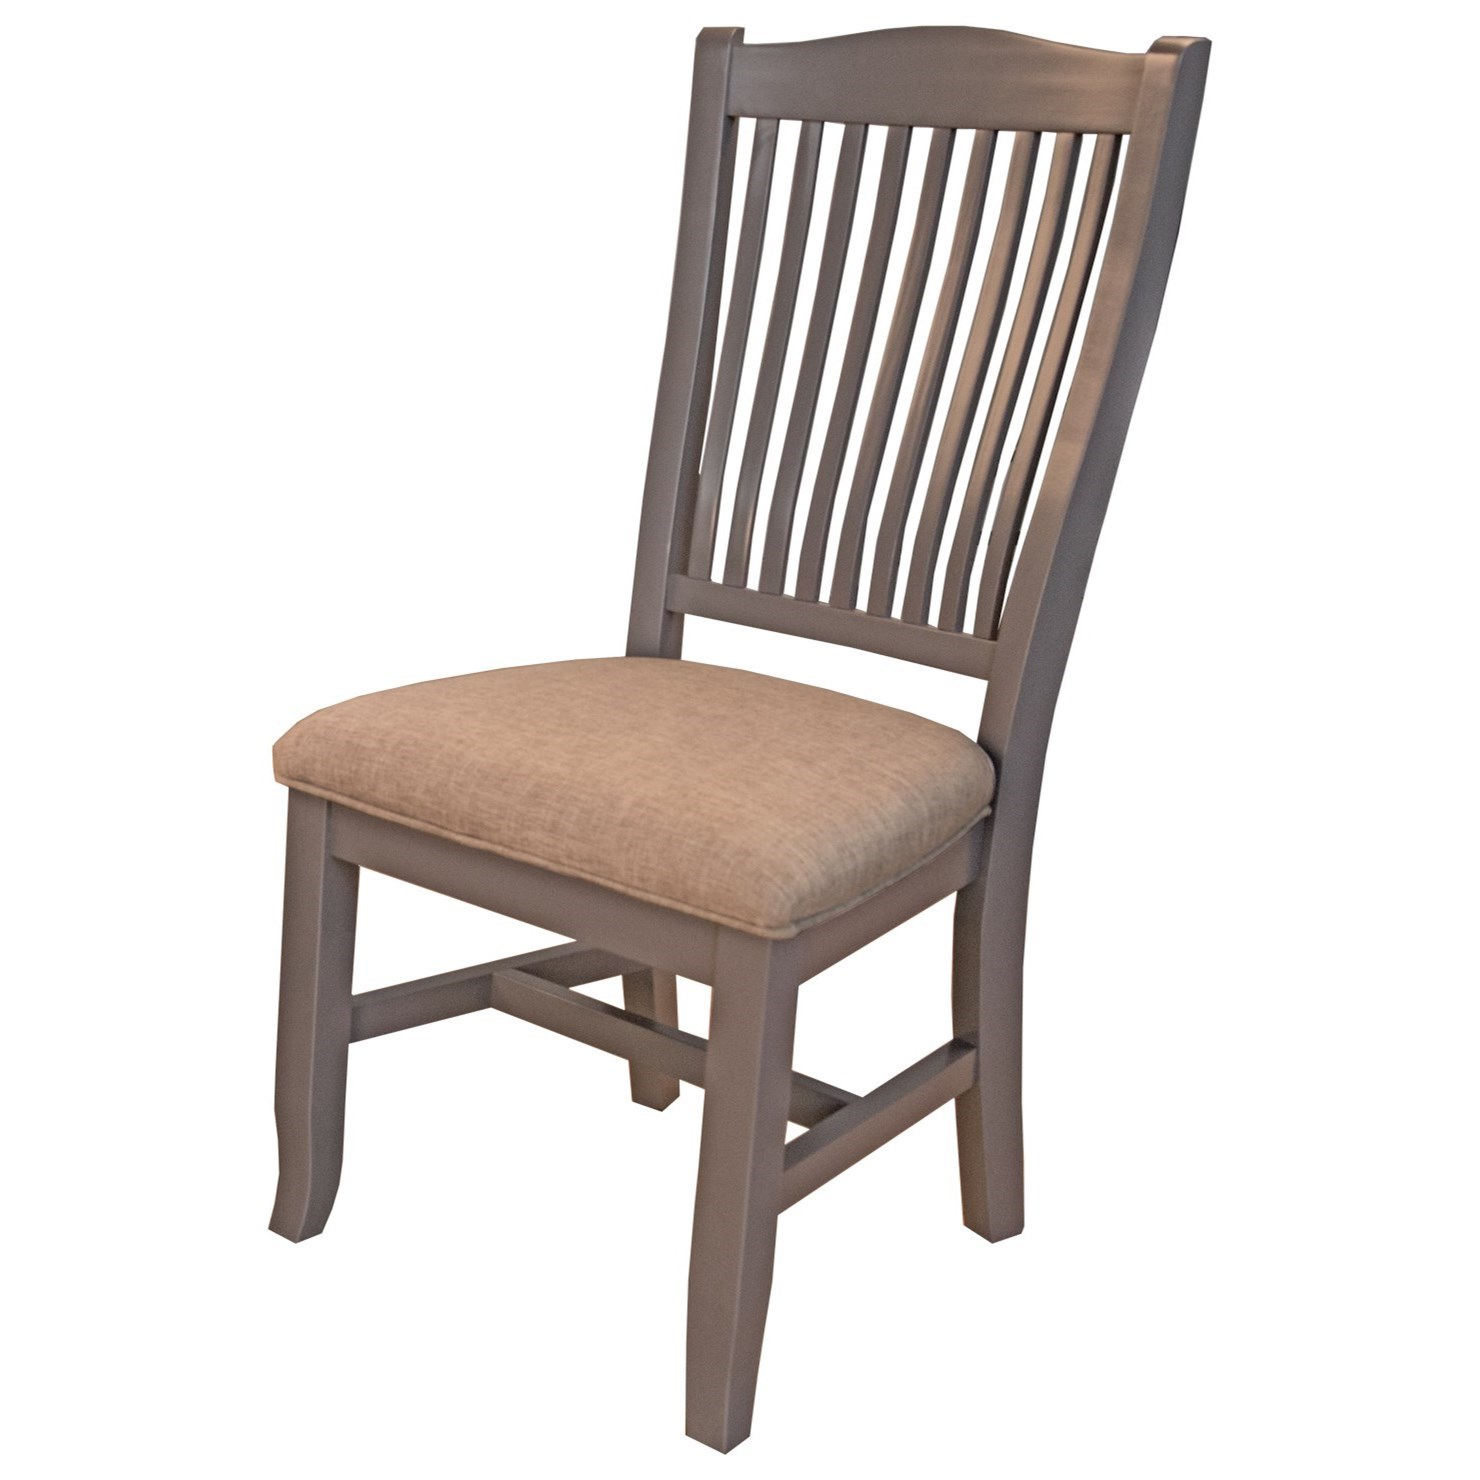 Port Townsend Slatback Side Chair with Upholstered Seat by AAmerica at Johnny Janosik